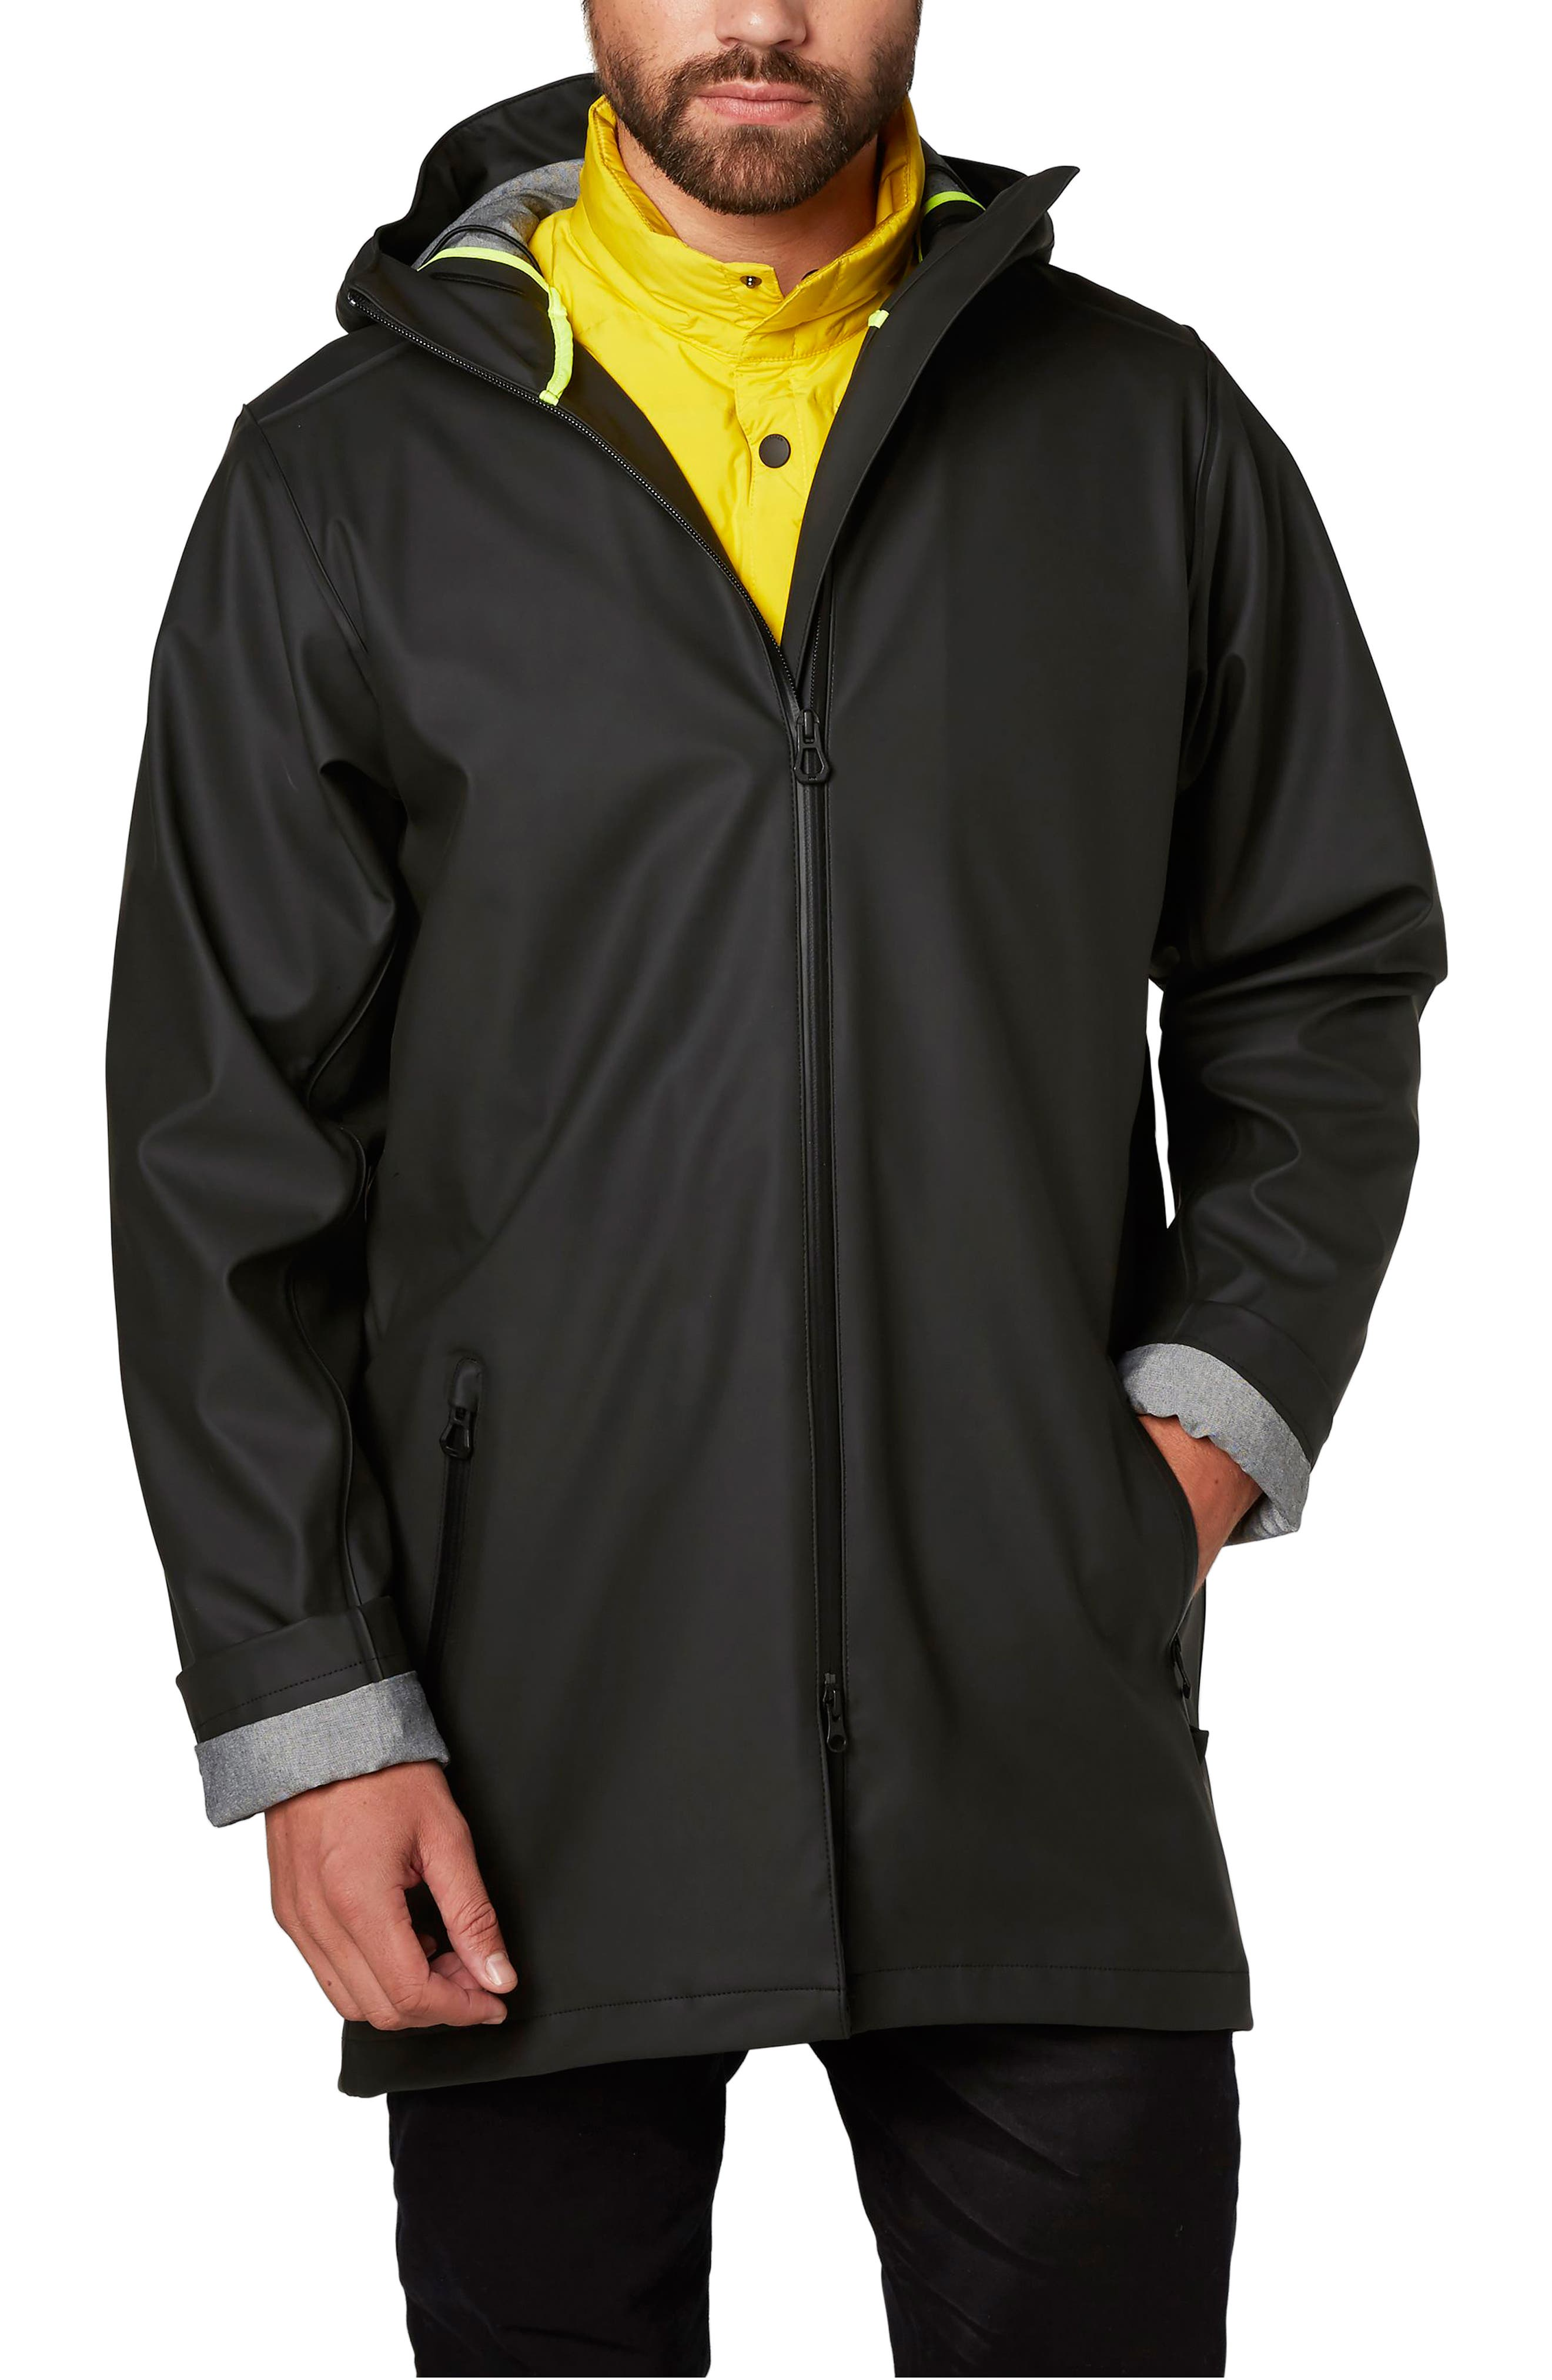 Copenhagen Raincoat,                             Main thumbnail 1, color,                             001